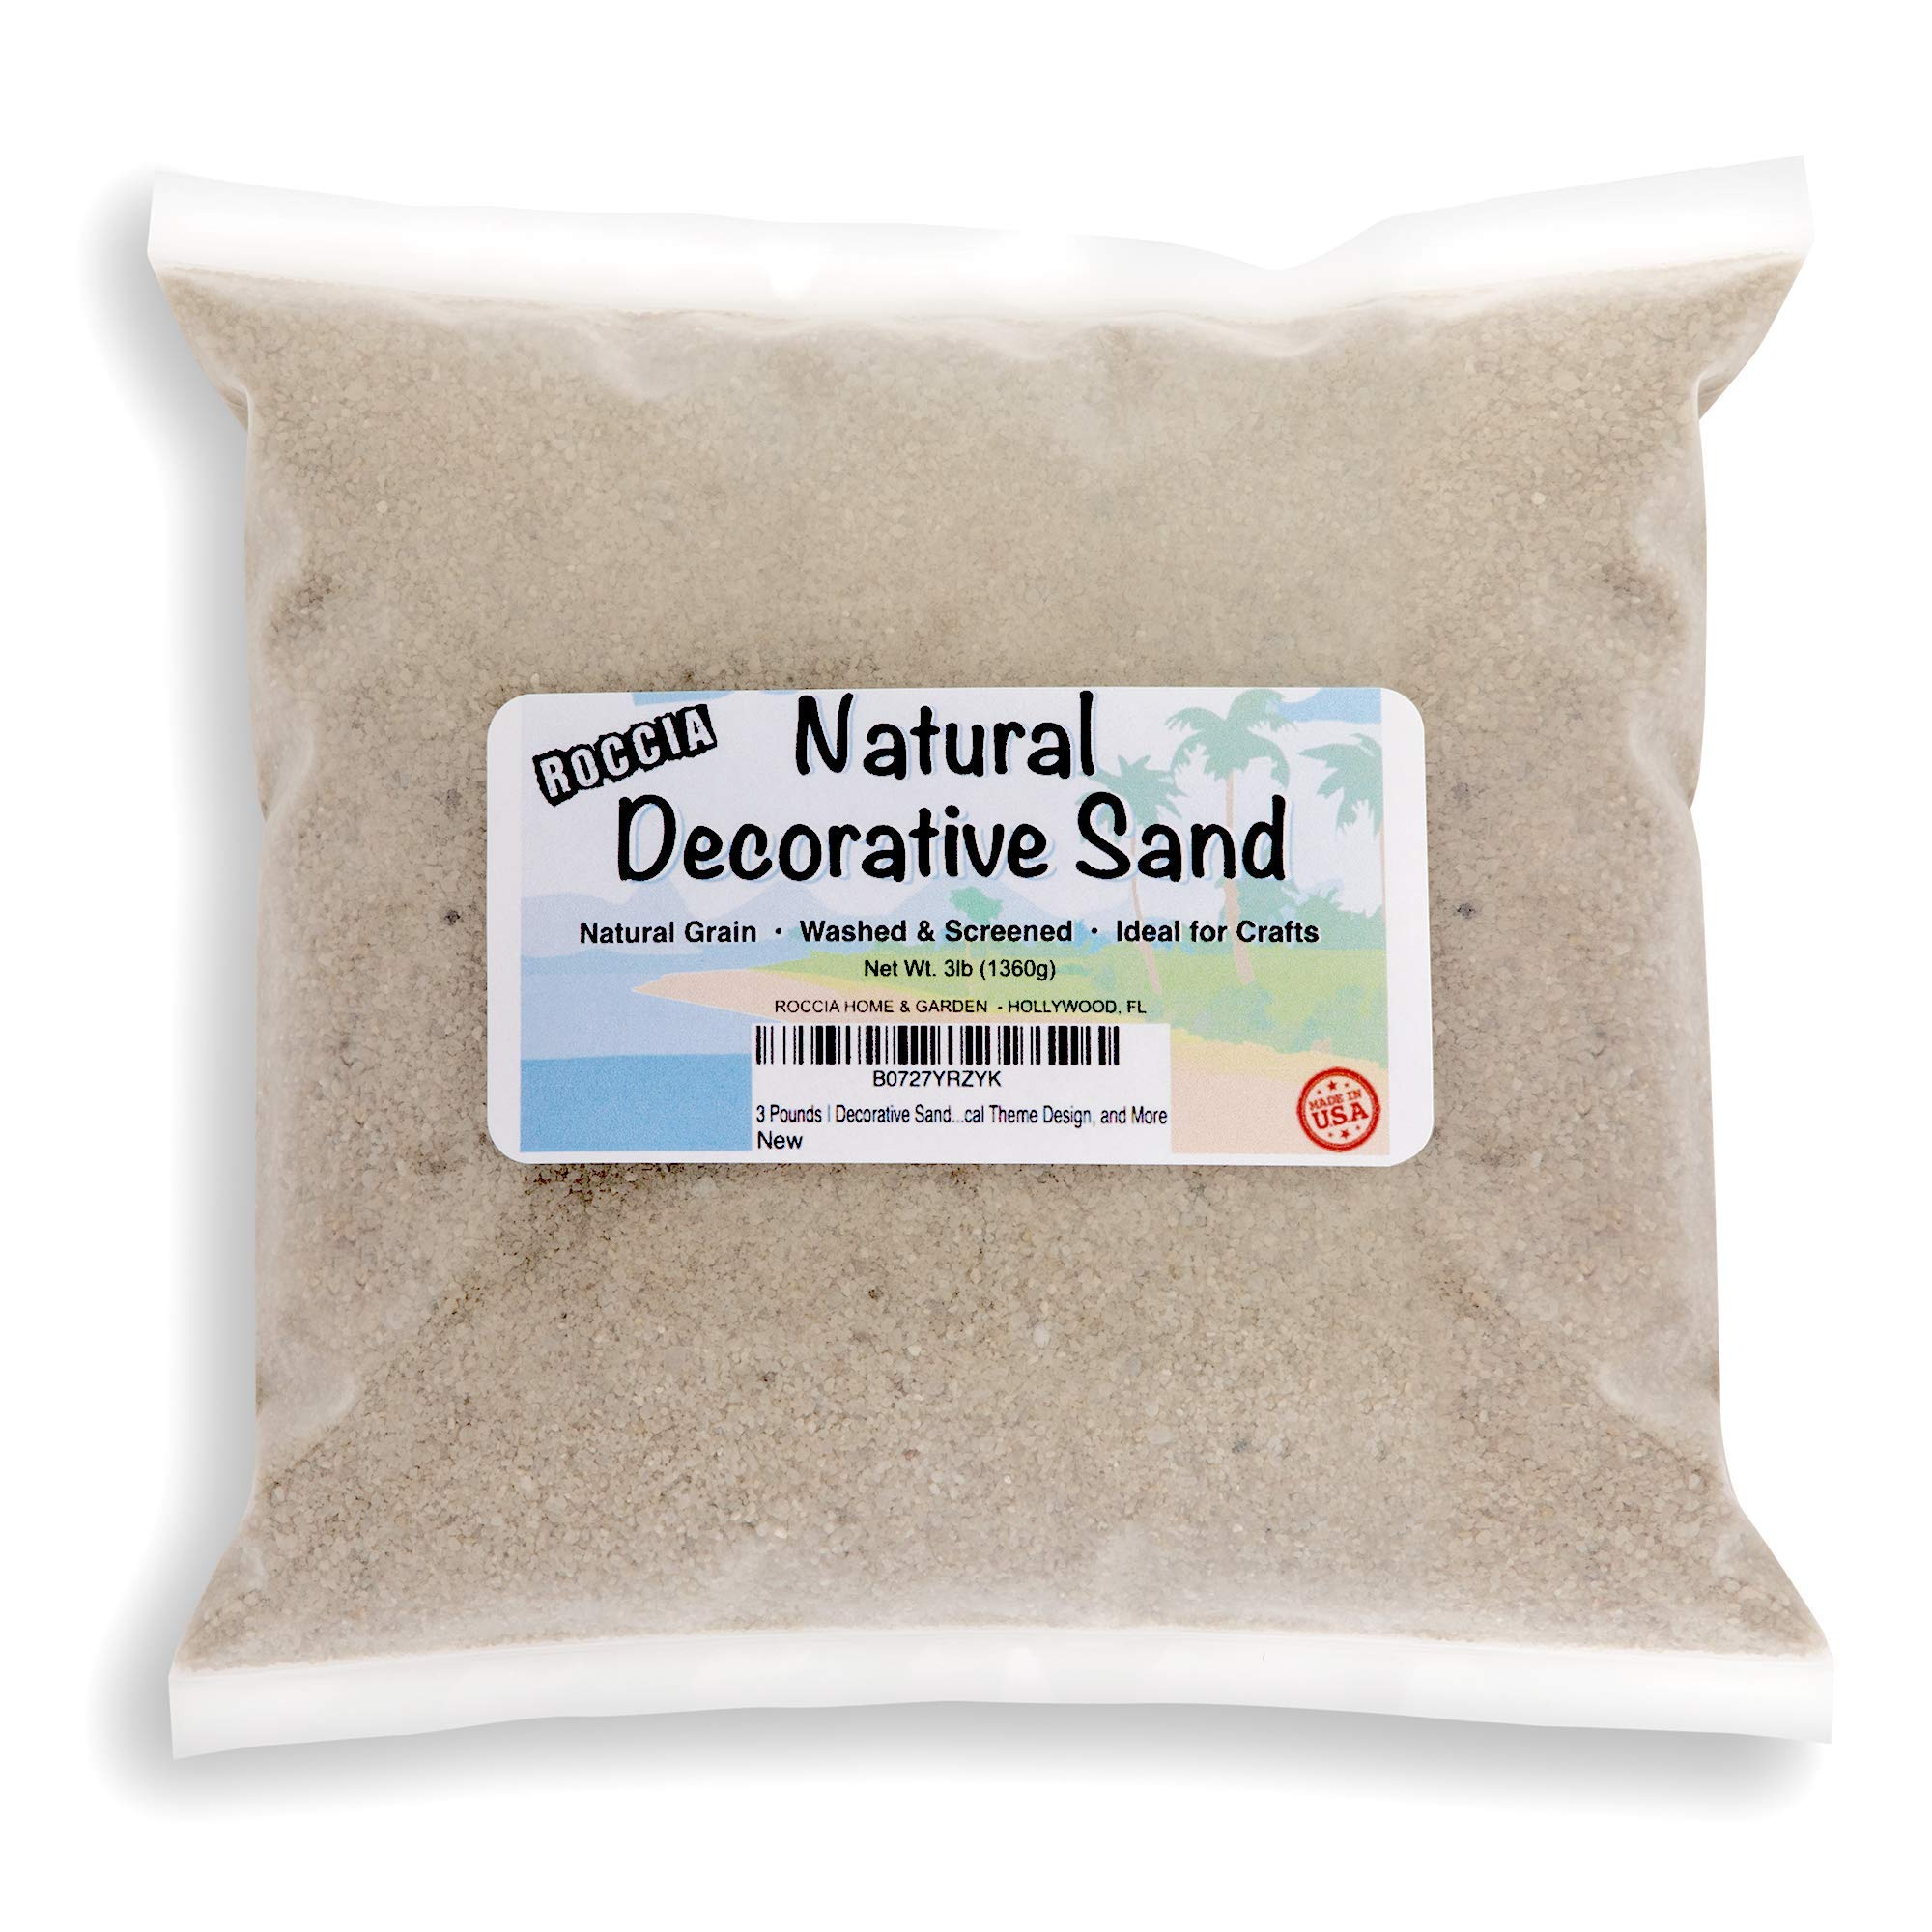 3 Pounds - Real Sand - Natural Color - for Interior Decor, Vase Filler, Sand Crafts, Nautical Theme Design, and More